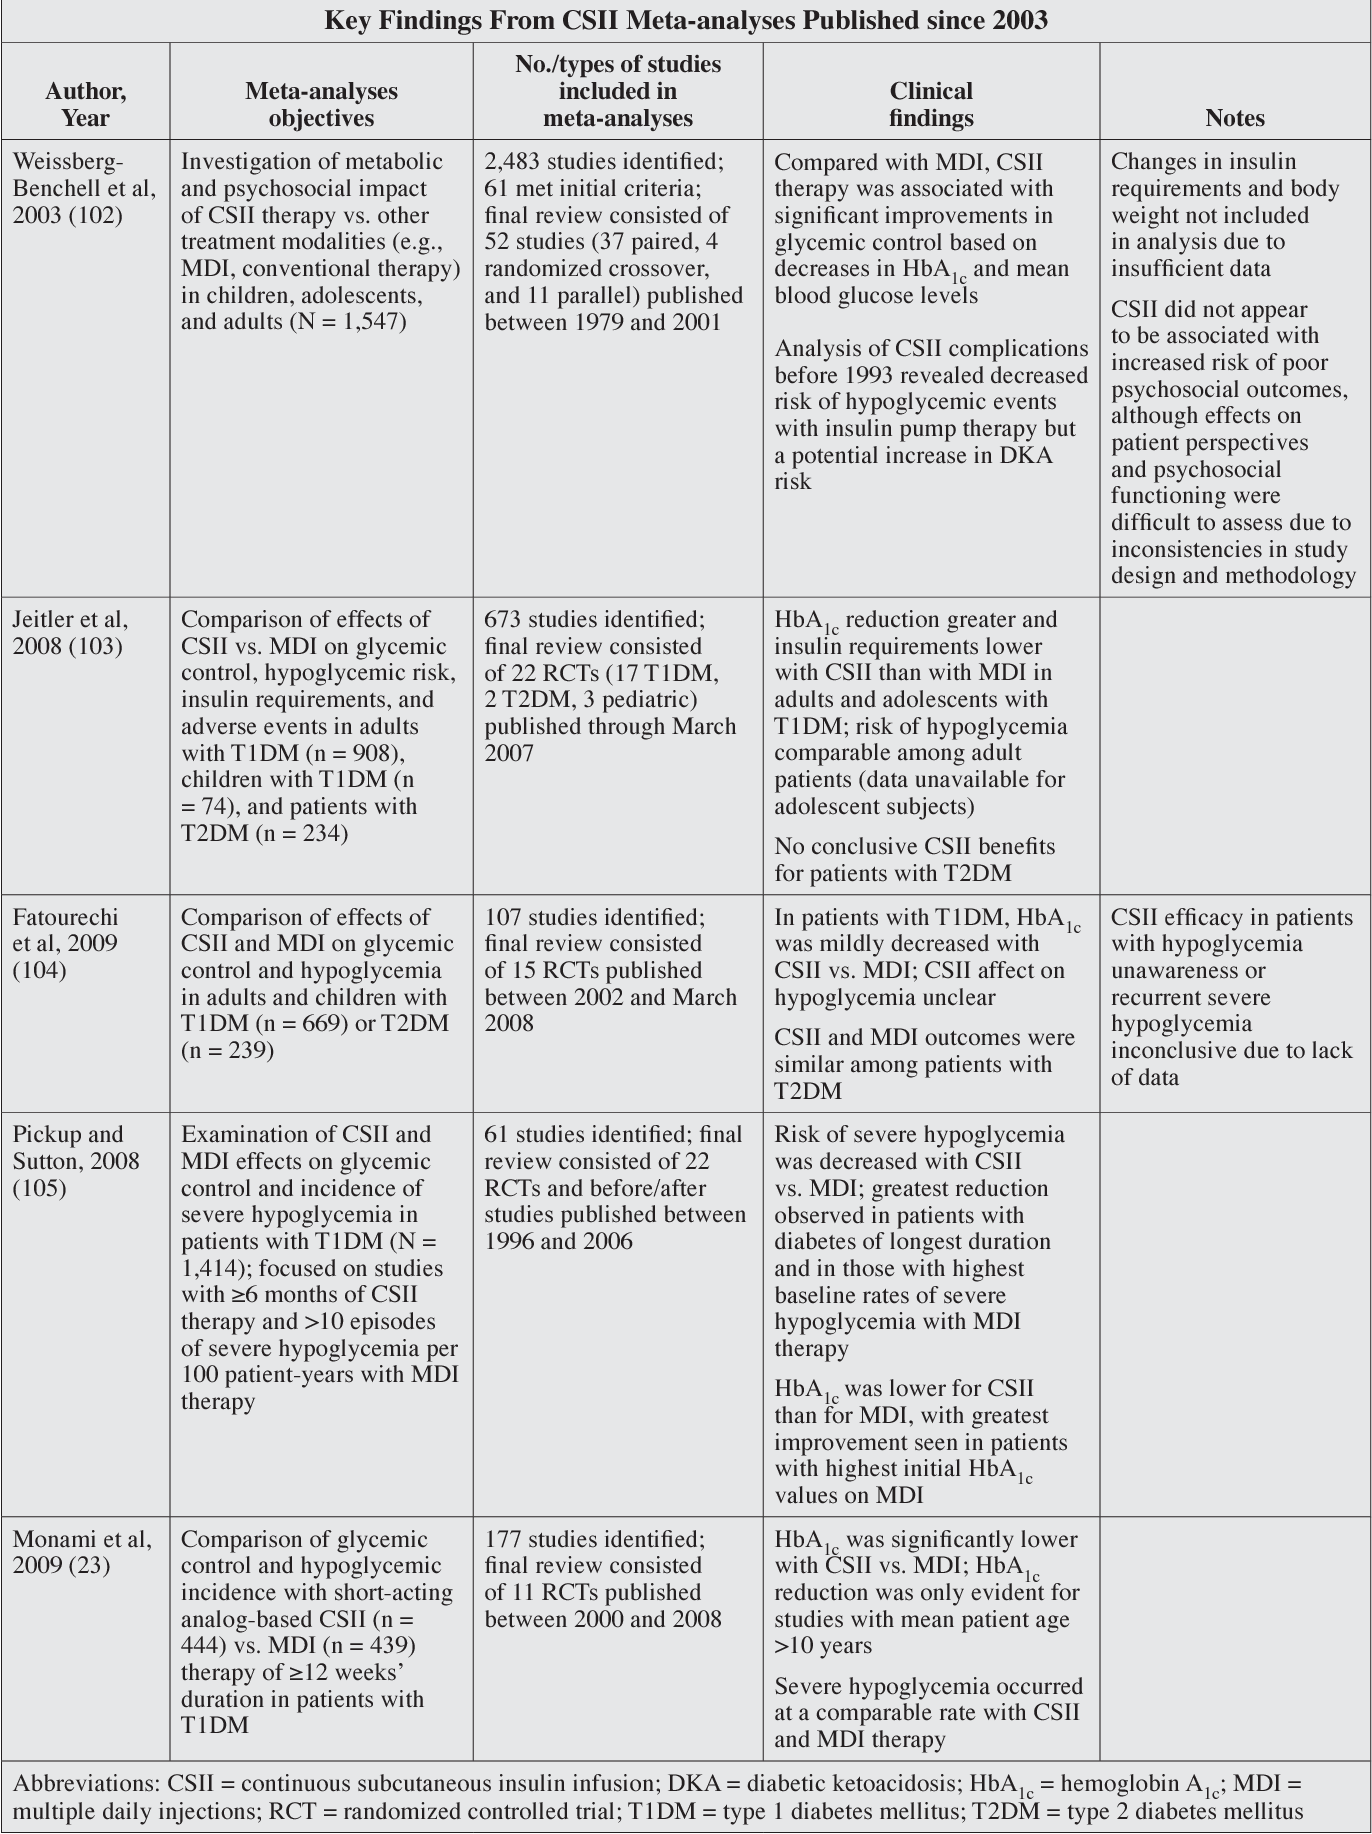 Consensus Statement by the American Association of Clinical